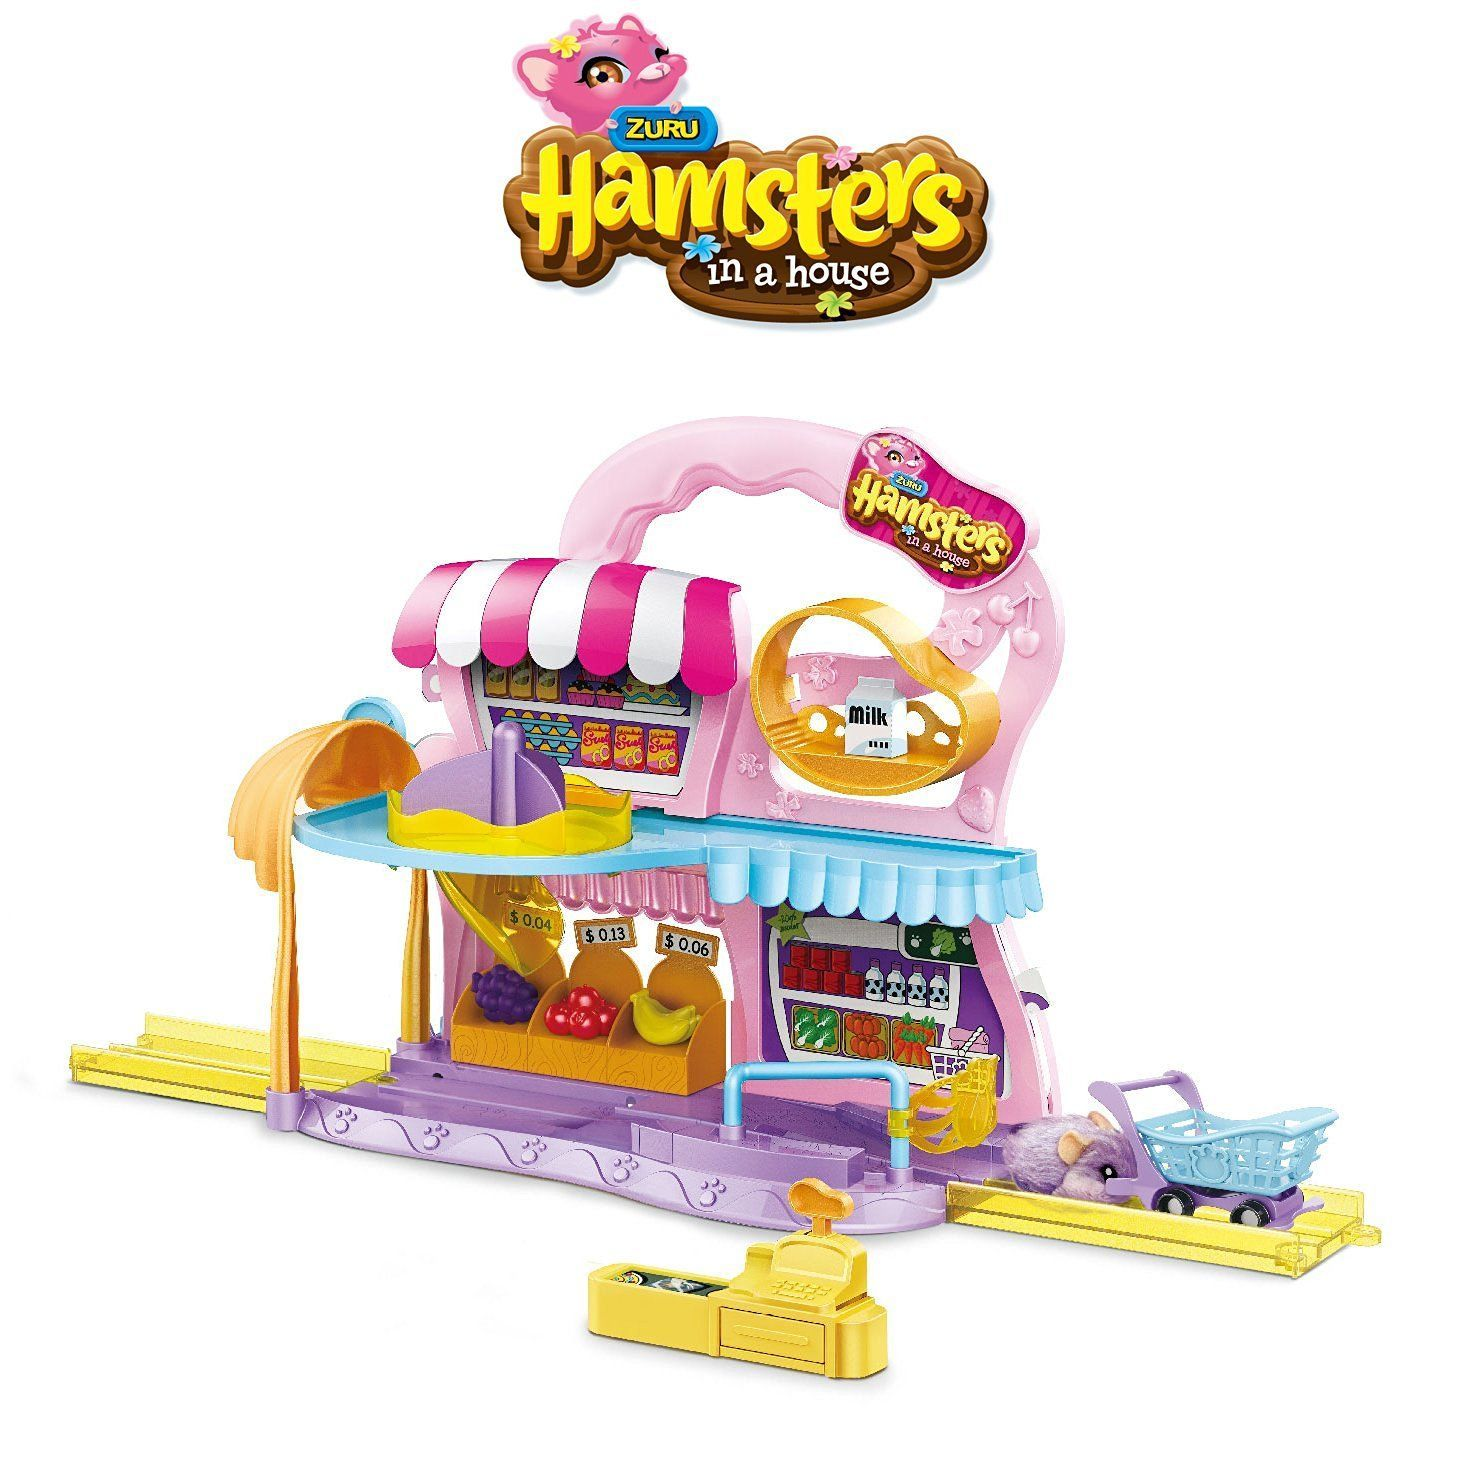 Hamsters In A House 6031572  Playset Supermercato